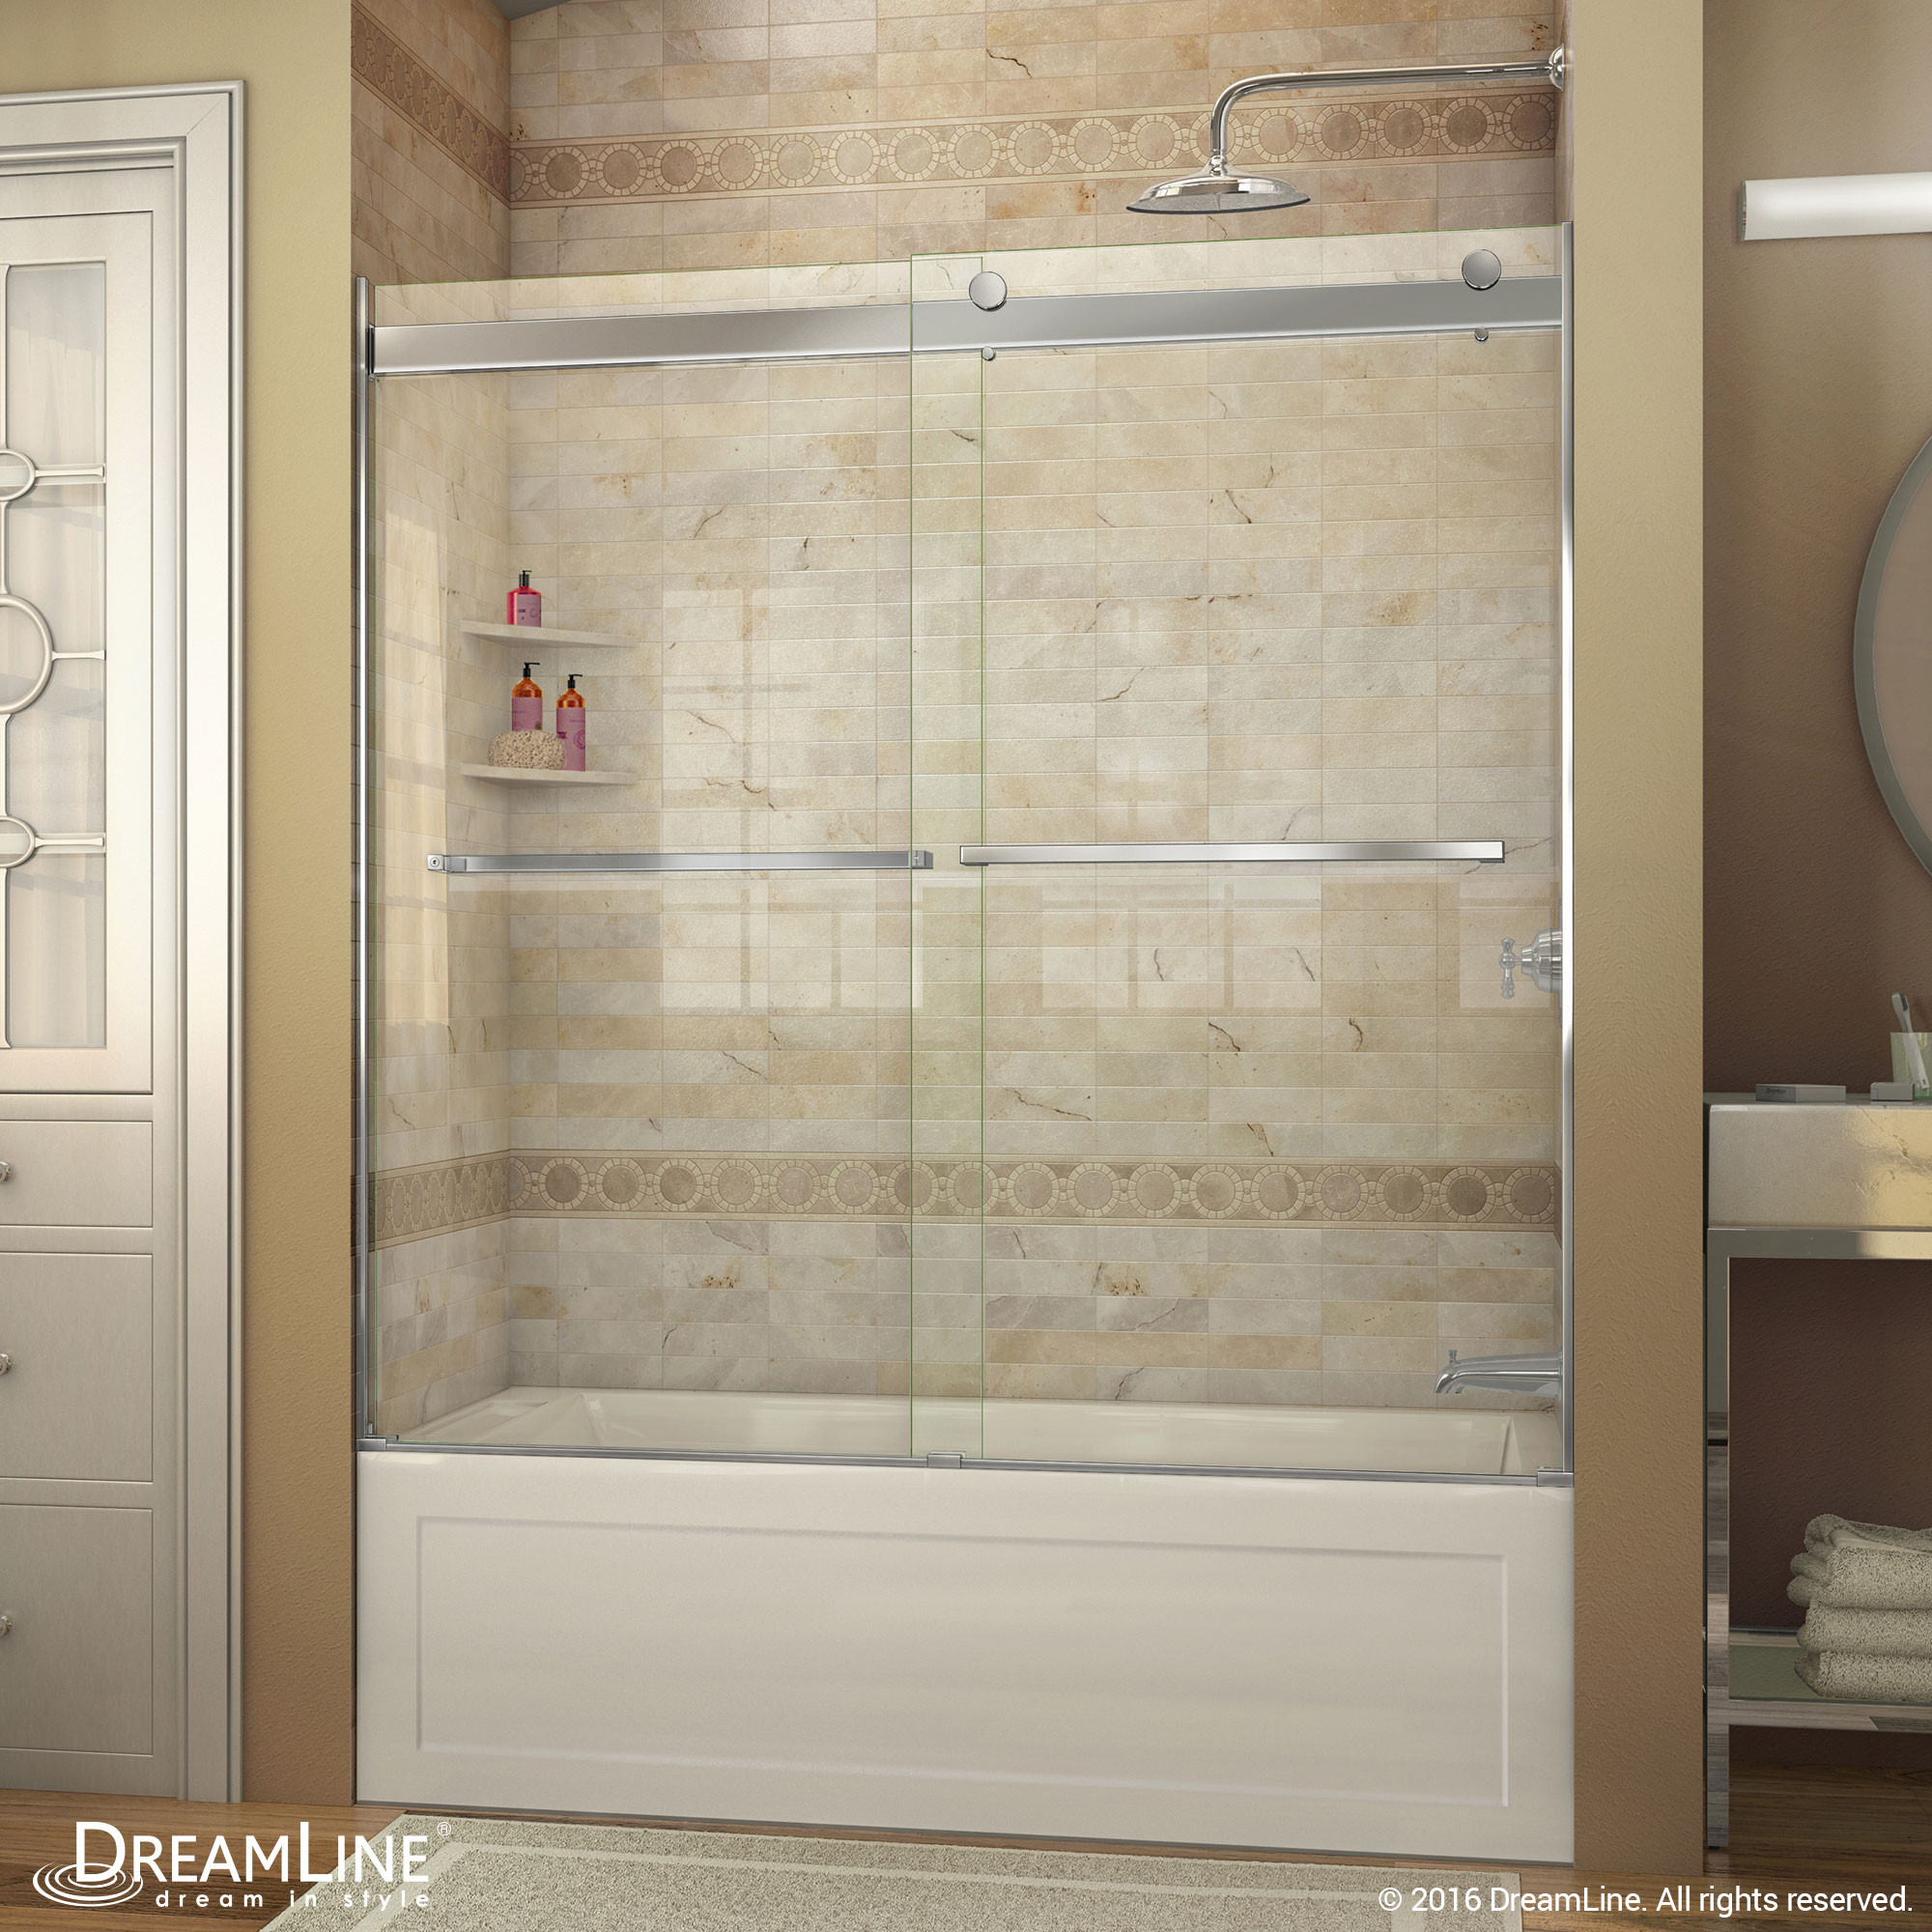 DreamLine SHDR-6360600-04 Brushed Nickel Essence 56 to 60 in. Frameless Bypass Tub Door